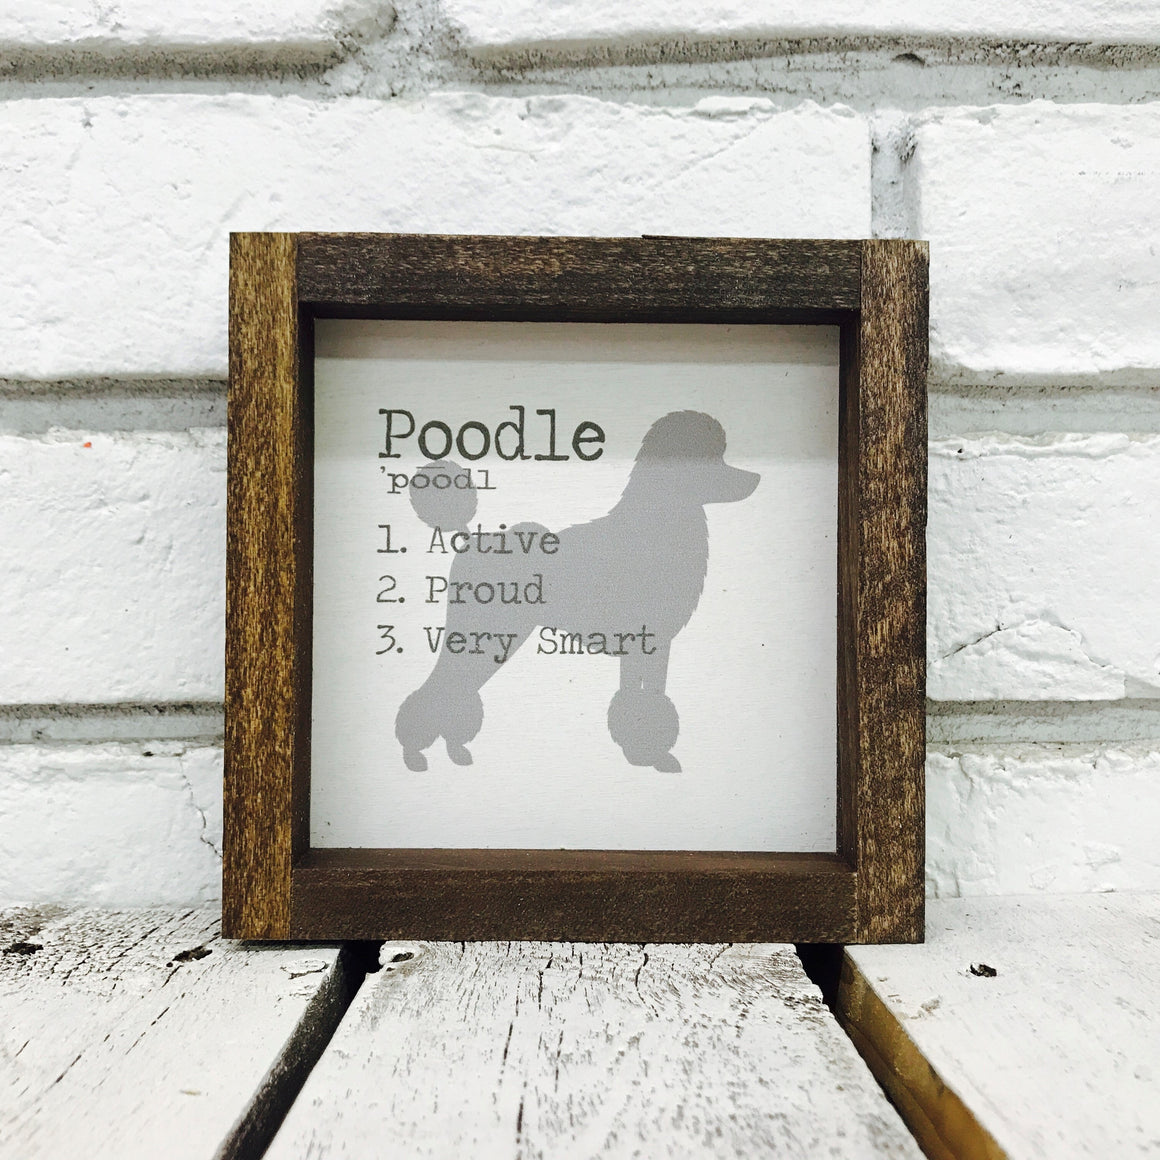 Poodle Dog Wooden Sign